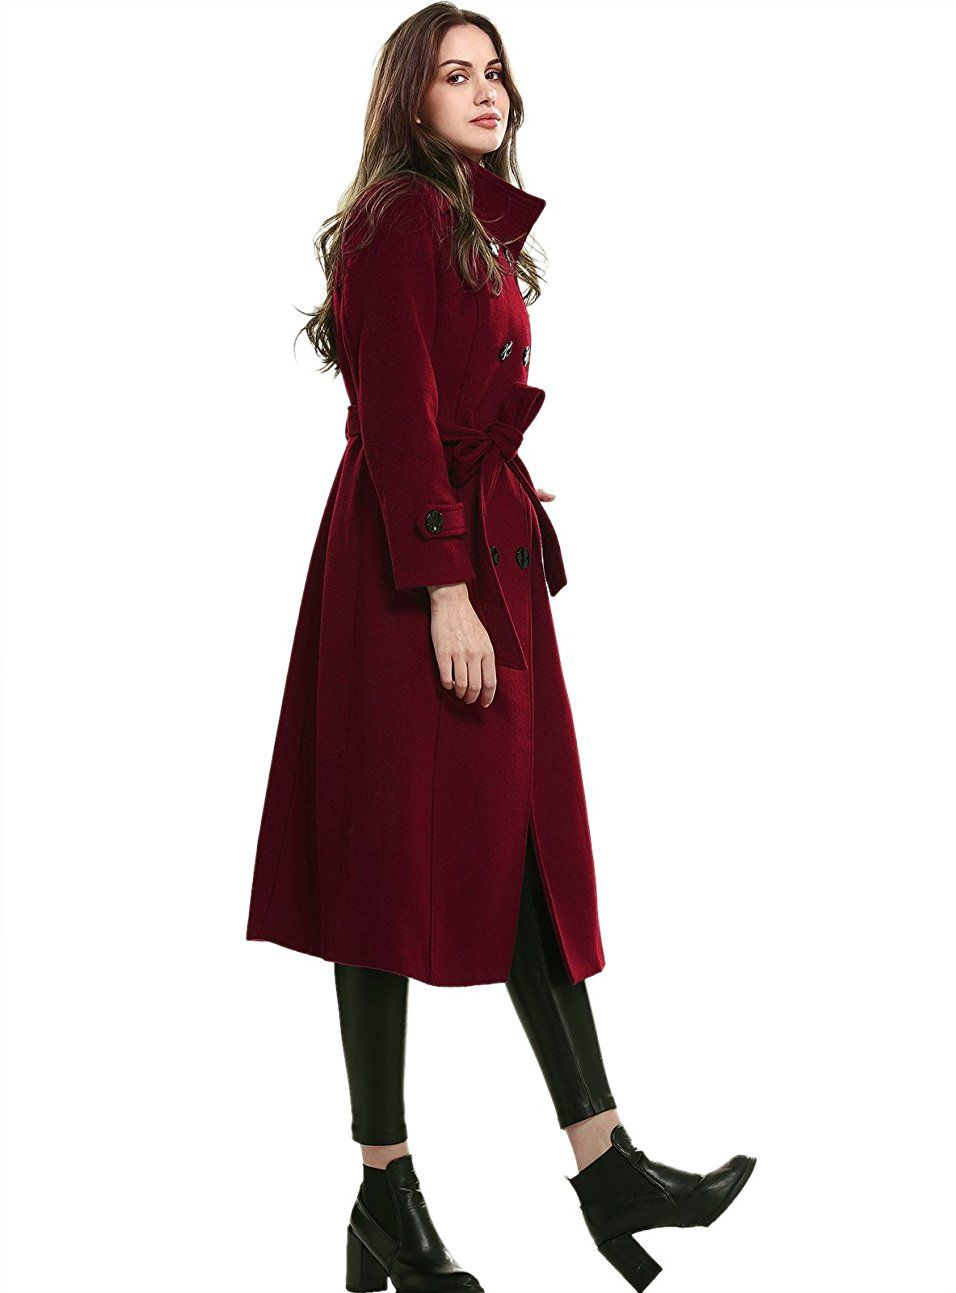 Amazon Com Escalier Women S Wool Trench Coat Winter Double Breasted Jacket With Belts Clothing Wool Trench Coat Women Wool Trench Coat Winter Trench Coat [ 1293 x 956 Pixel ]